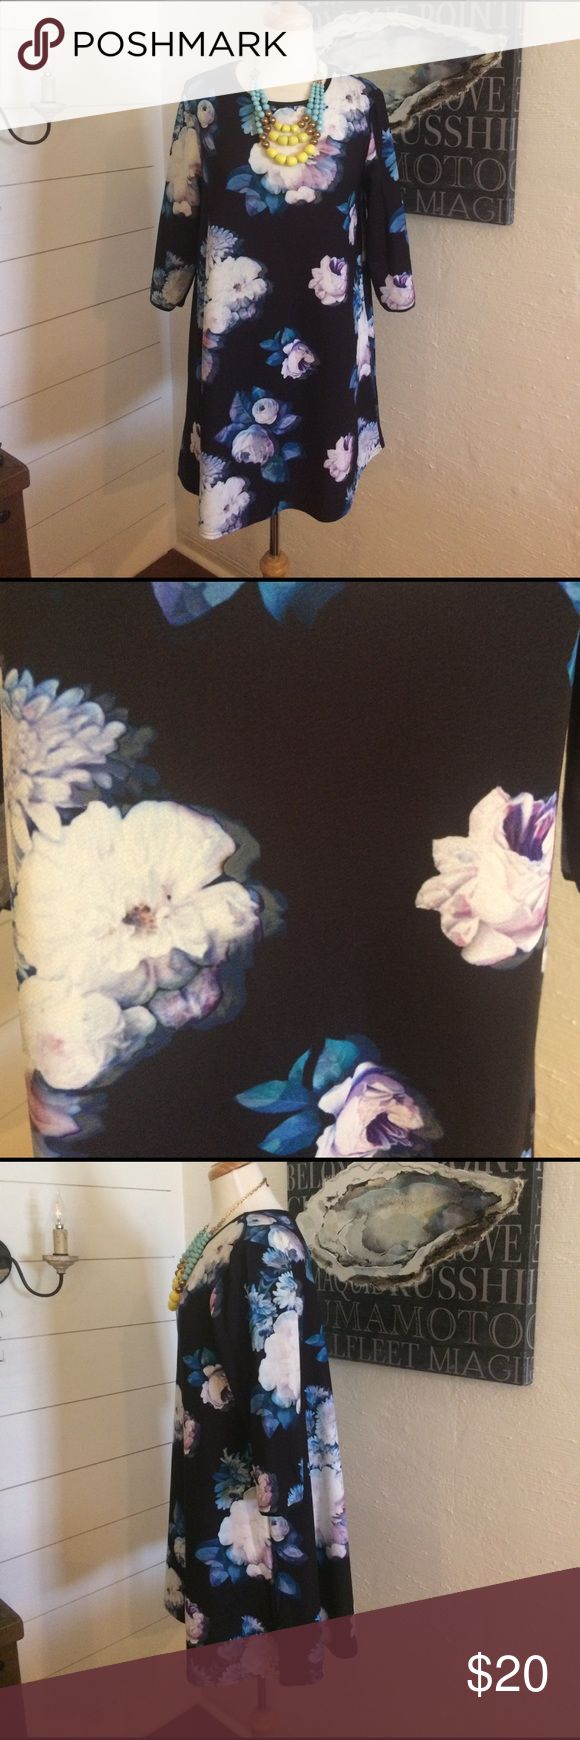 River Island Floral Swing Dress River Island Floral Swing Dress in black with purple, white & blue florals, 3/4 sleeves. This runs smaller but still flowy & swingy! Super cute with heels or casual with boots & leggings. Worn once! River Island Dresses